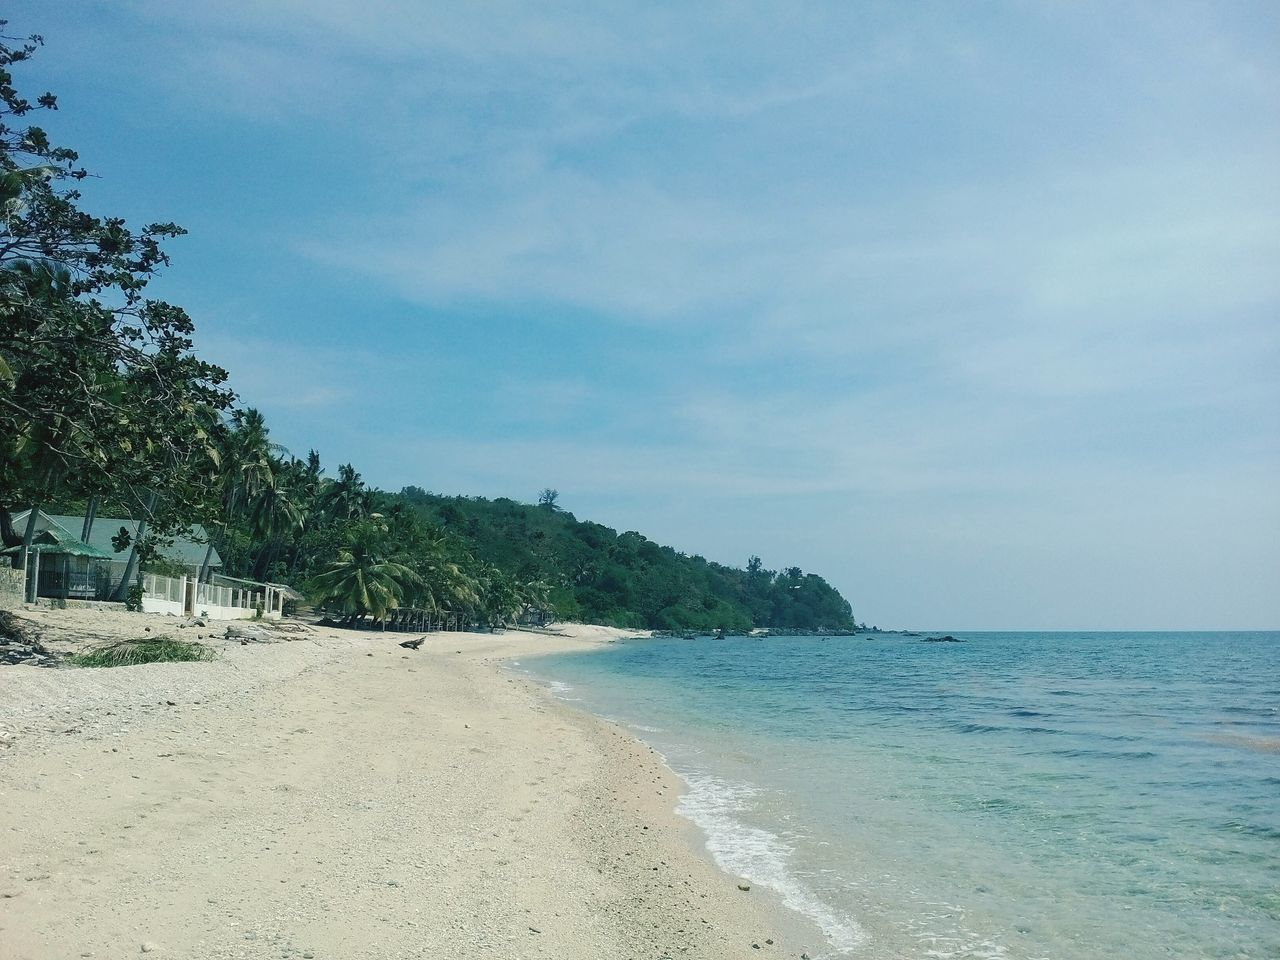 sea, beach, sand, sky, nature, beauty in nature, tranquility, no people, water, scenics, tranquil scene, outdoors, tree, day, horizon over water, scenery